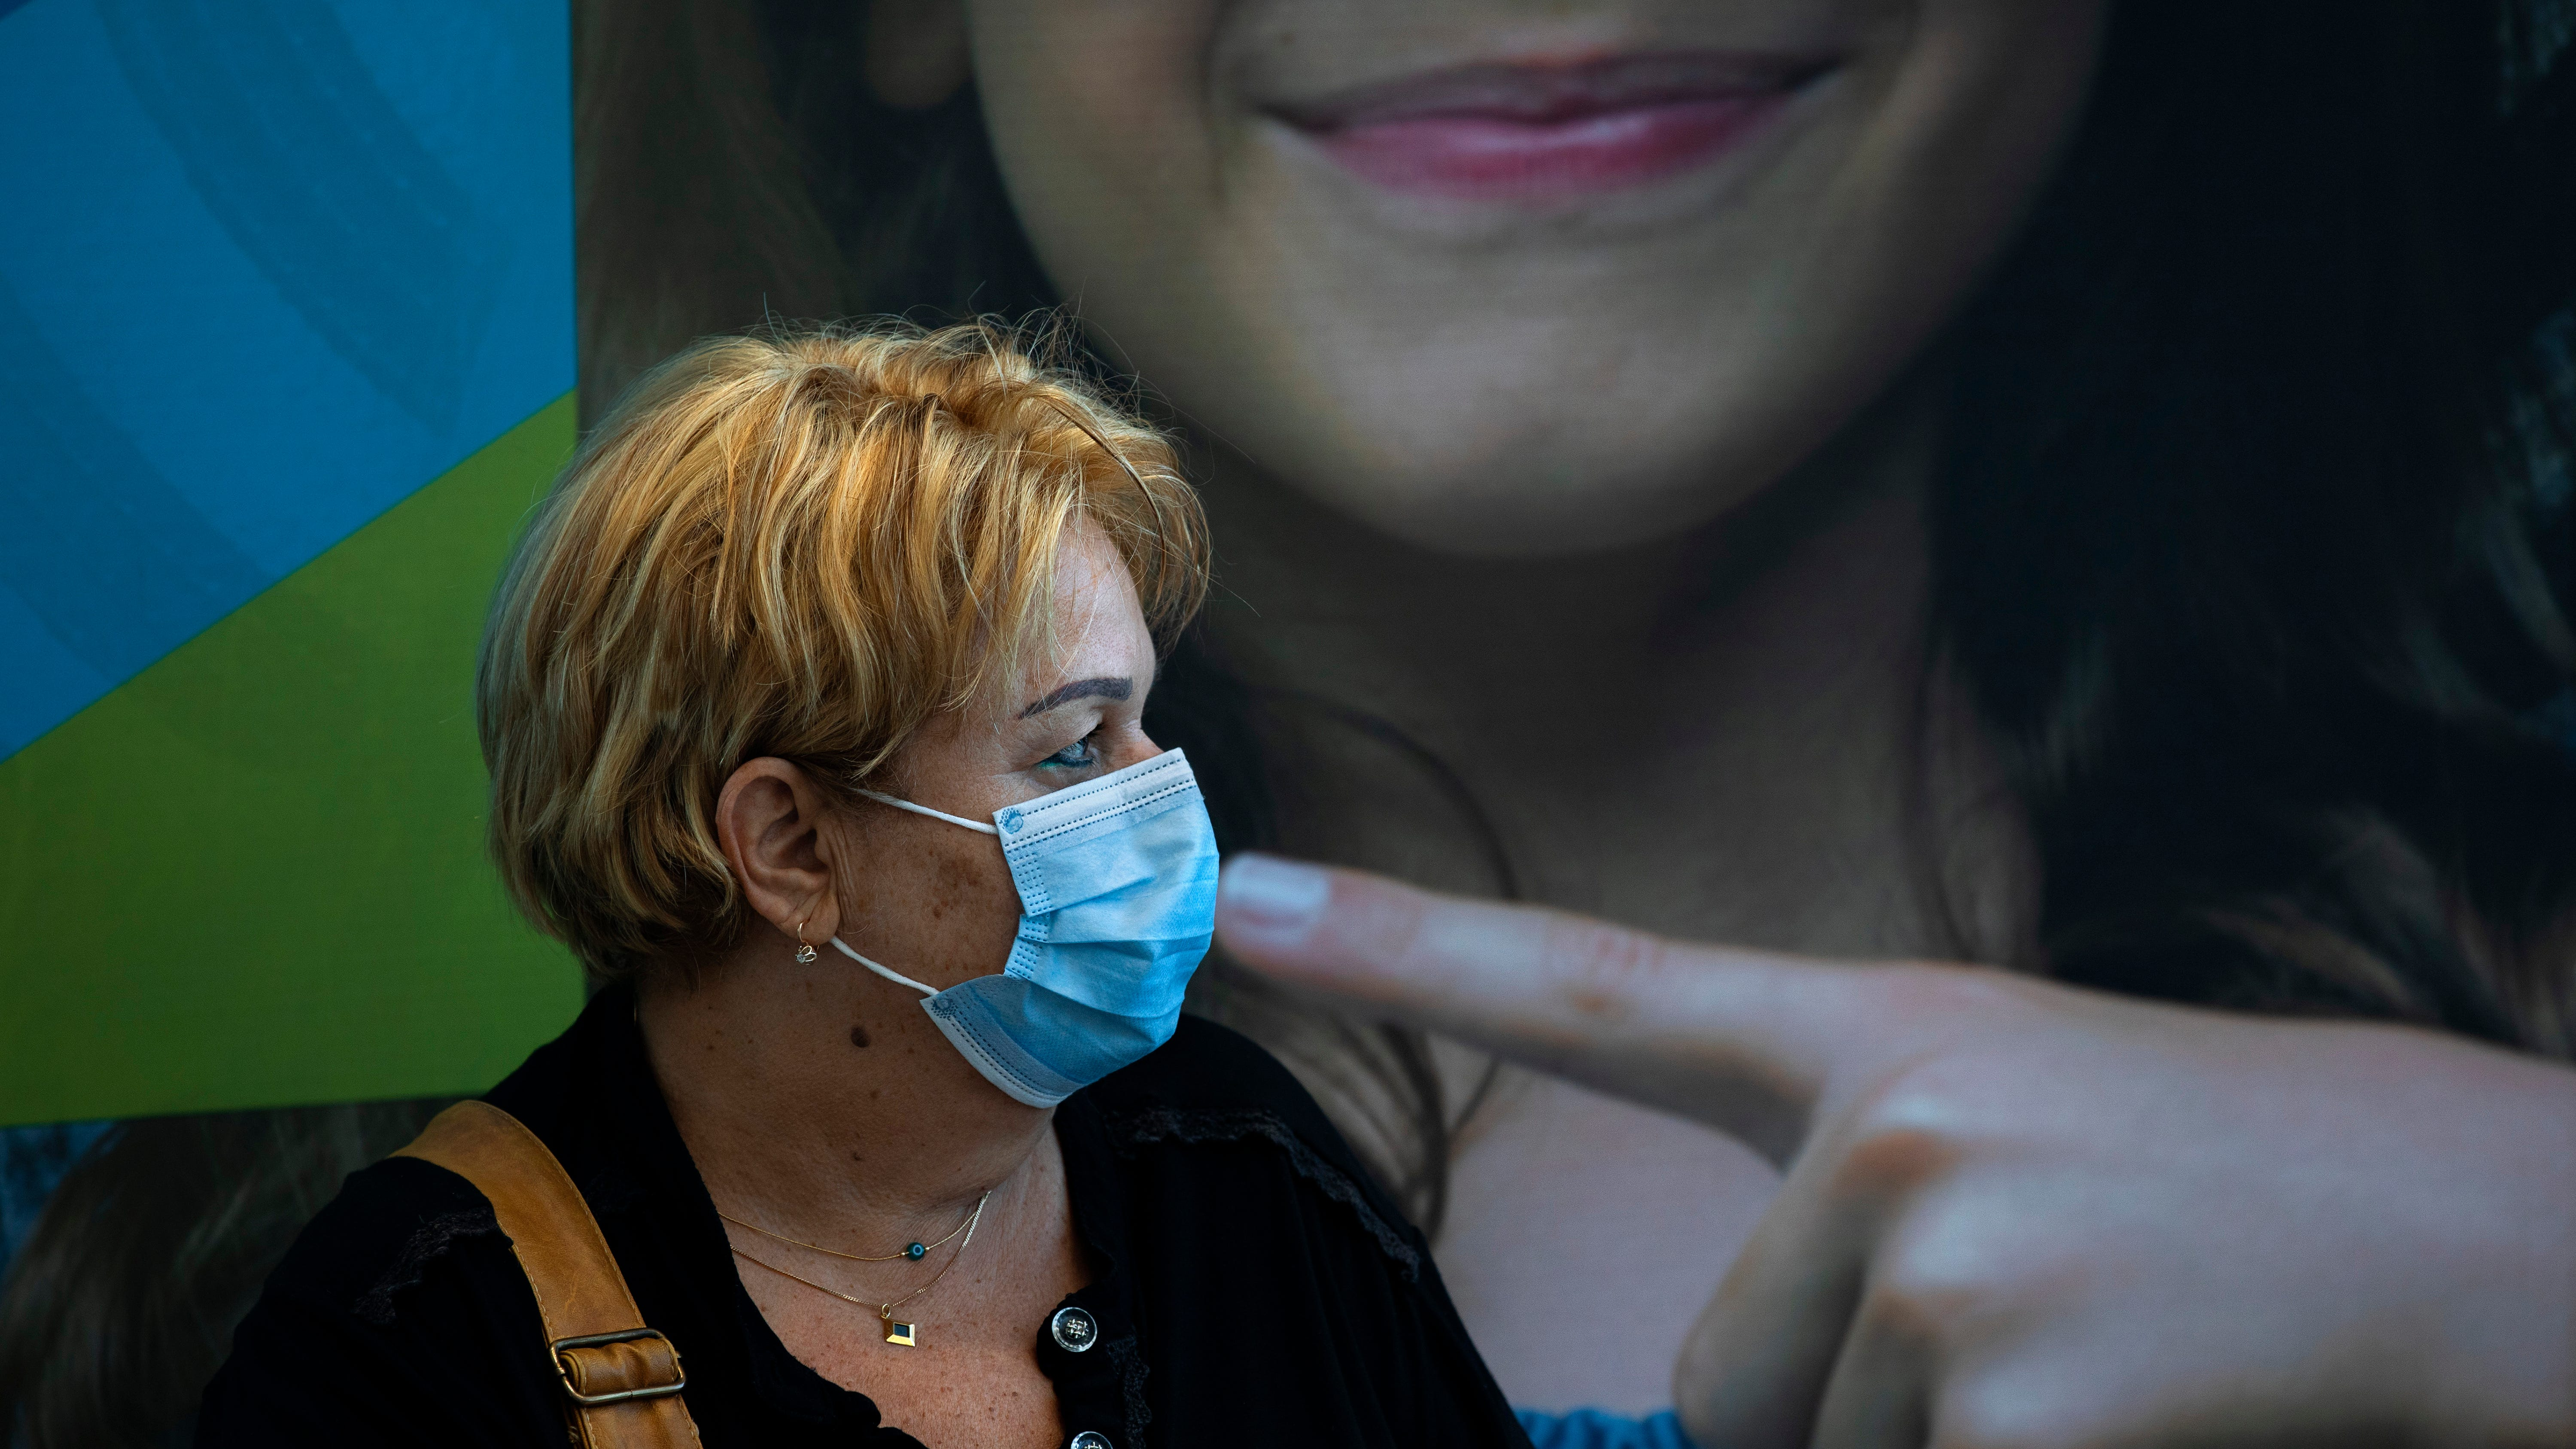 A woman rests after receiving a third Pfizer-BioNTech COVID-19 vaccine at a coronavirus vaccination center in Tel Aviv, Israel, Tuesday, Aug. 10, 2021. Israel is grappling with a surge of infections and urging people over age 60 to get a booster shot.